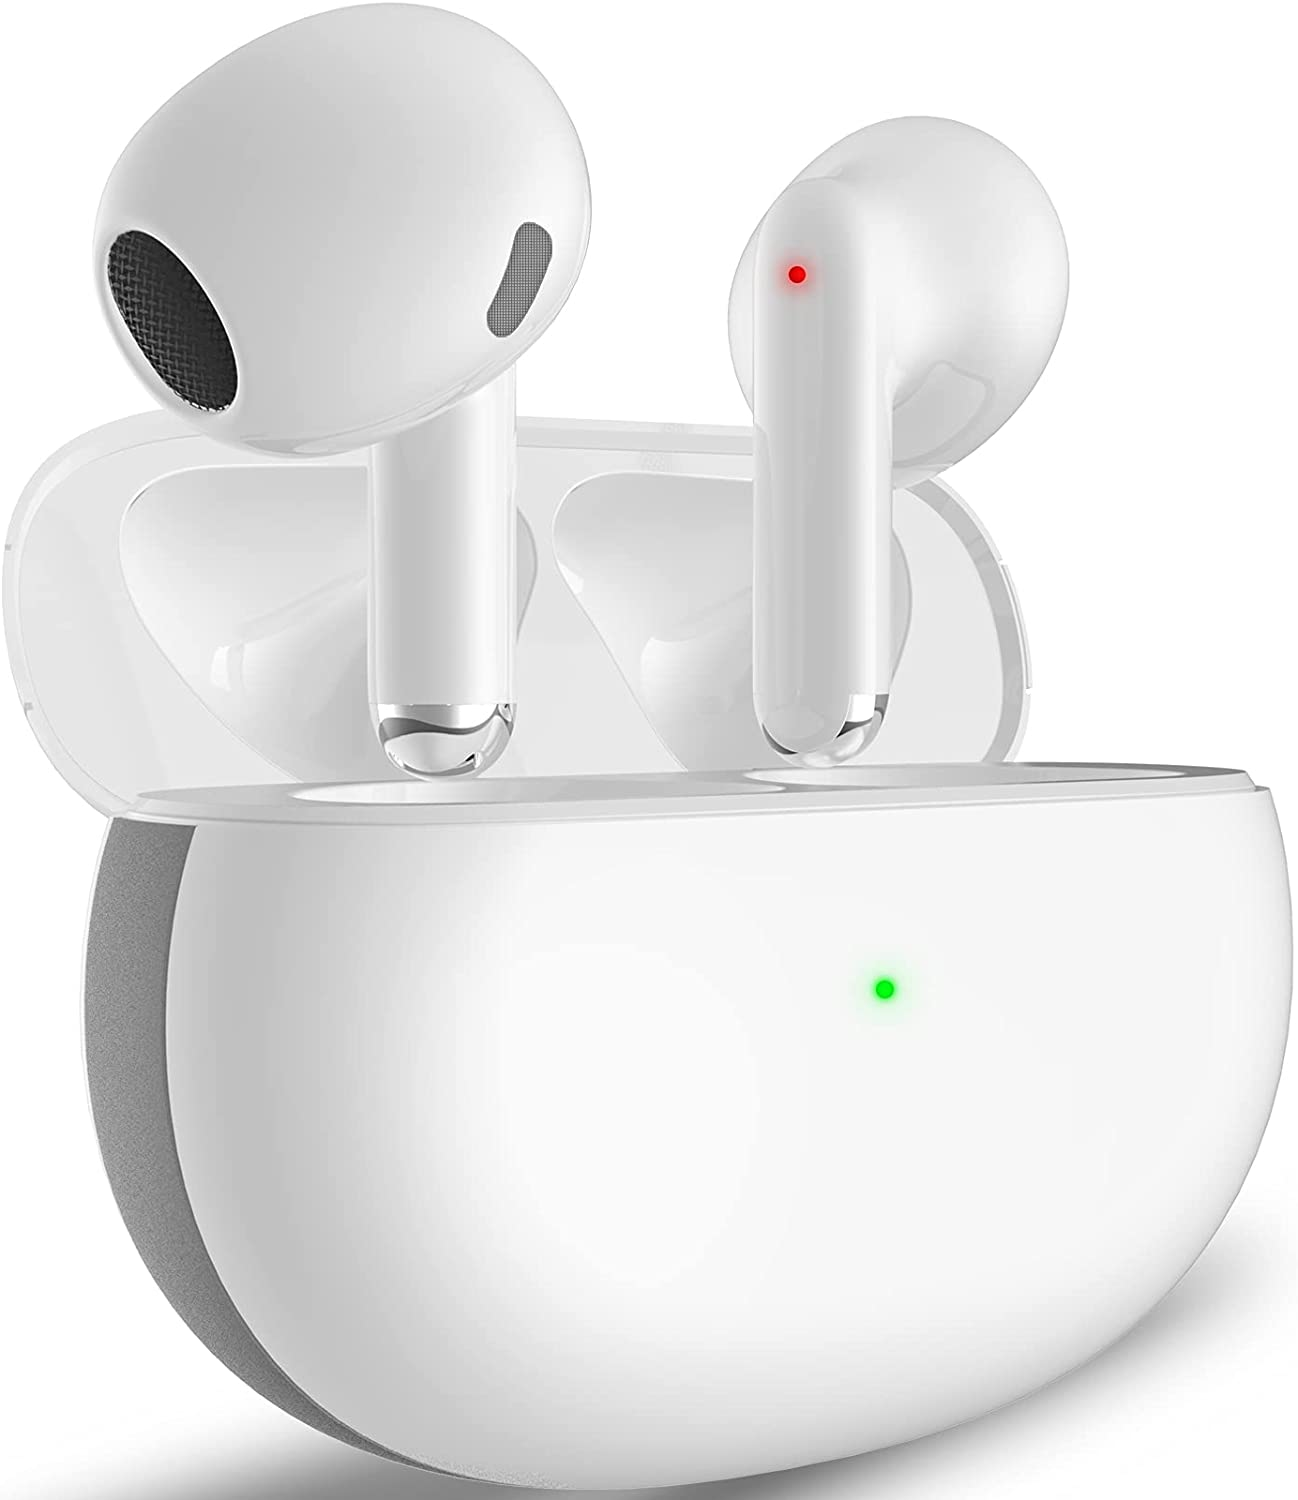 Wireless Earbuds Bluetooth Headphones with Fast Wireless Charging 24Hours Box 3D Stereo Sound Earphones Active Noise Cancelling in-Ear Headphones for Android/iOS/iPhone/Samsung/Earbuds (White)